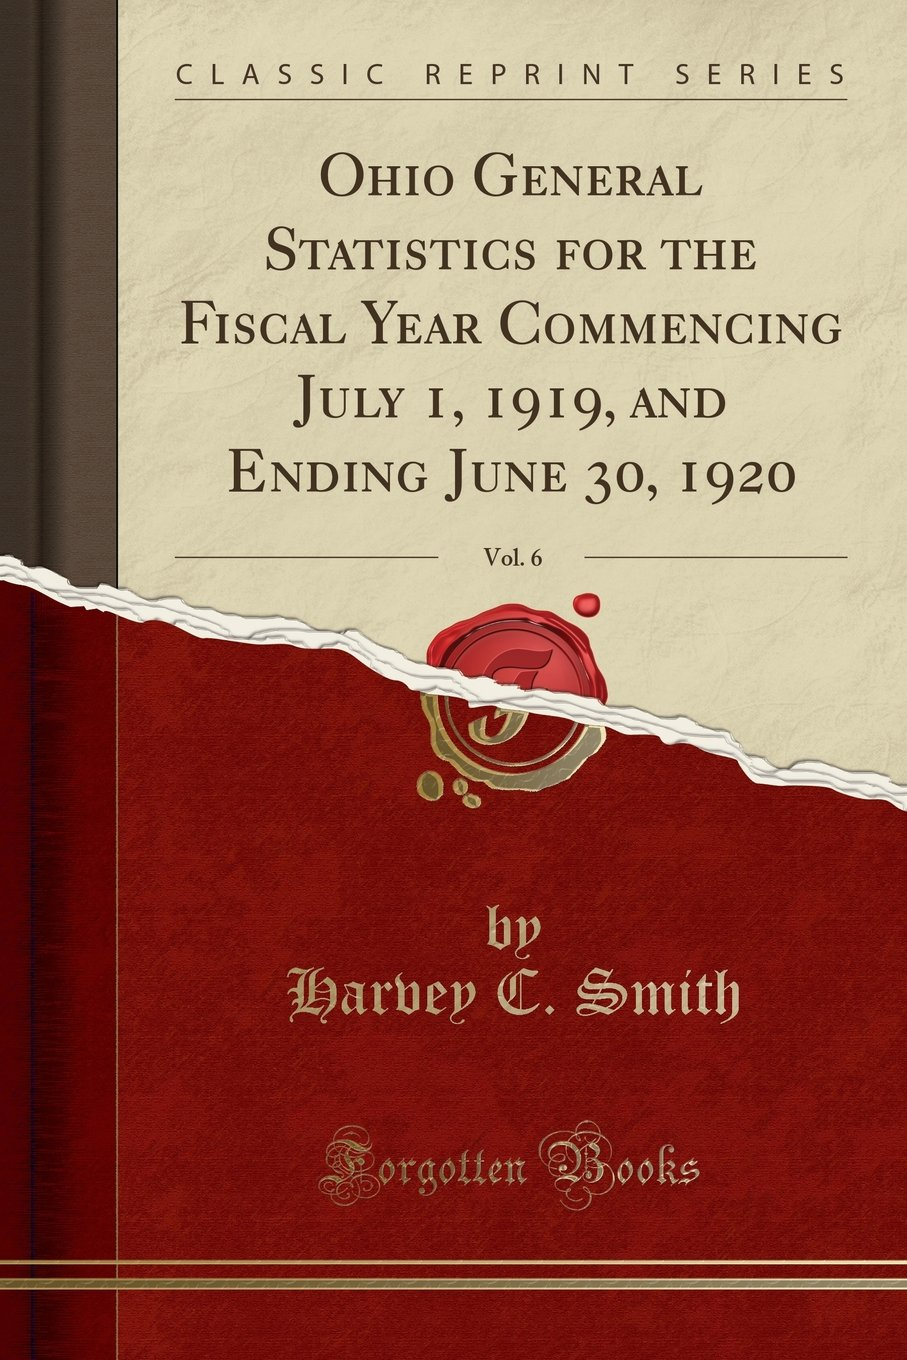 Ohio General Statistics for the Fiscal Year Commencing July 1, 1919, and Ending June 30, 1920, Vol. 6 (Classic Reprint) pdf